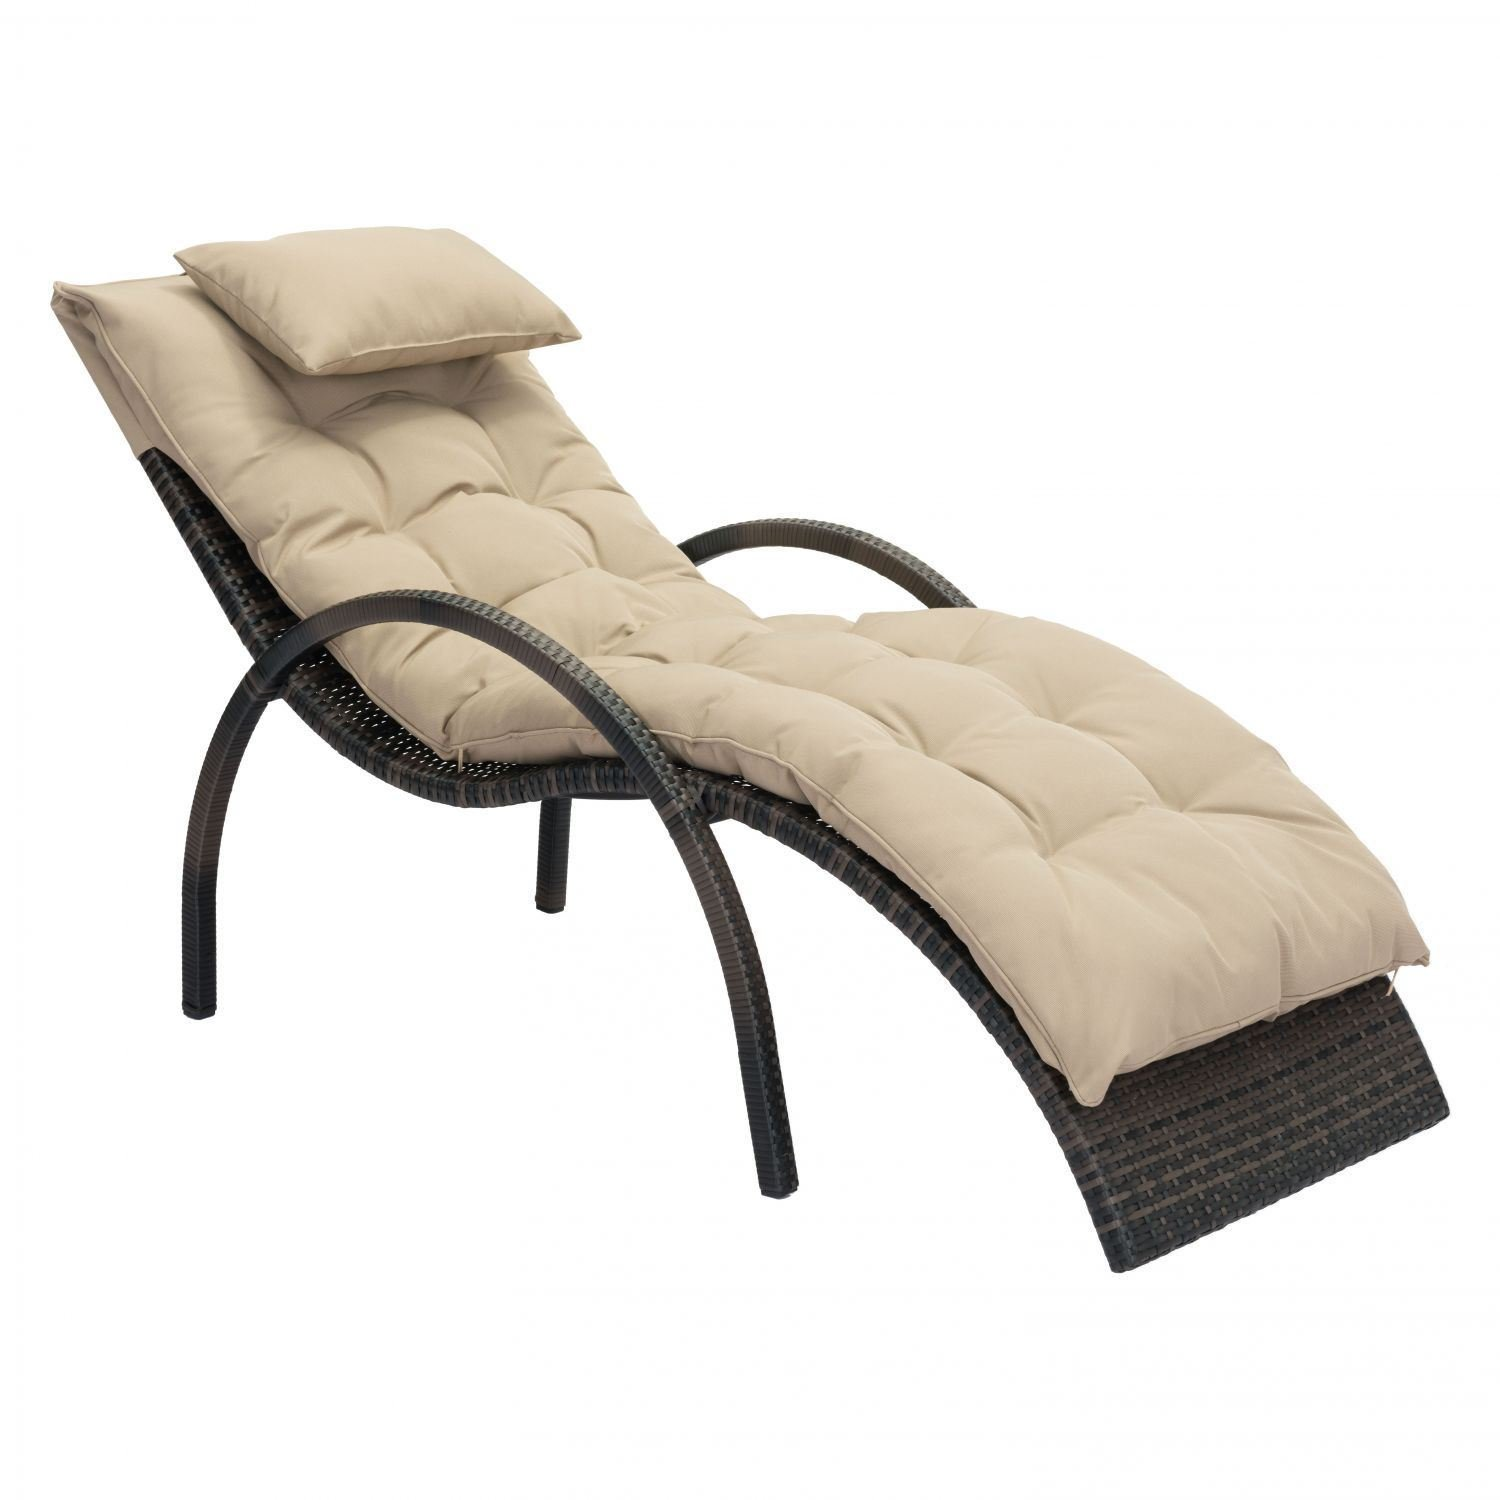 Eggertz Beach Chaise Lounge Brown Beige Zuo Modern Contemporary